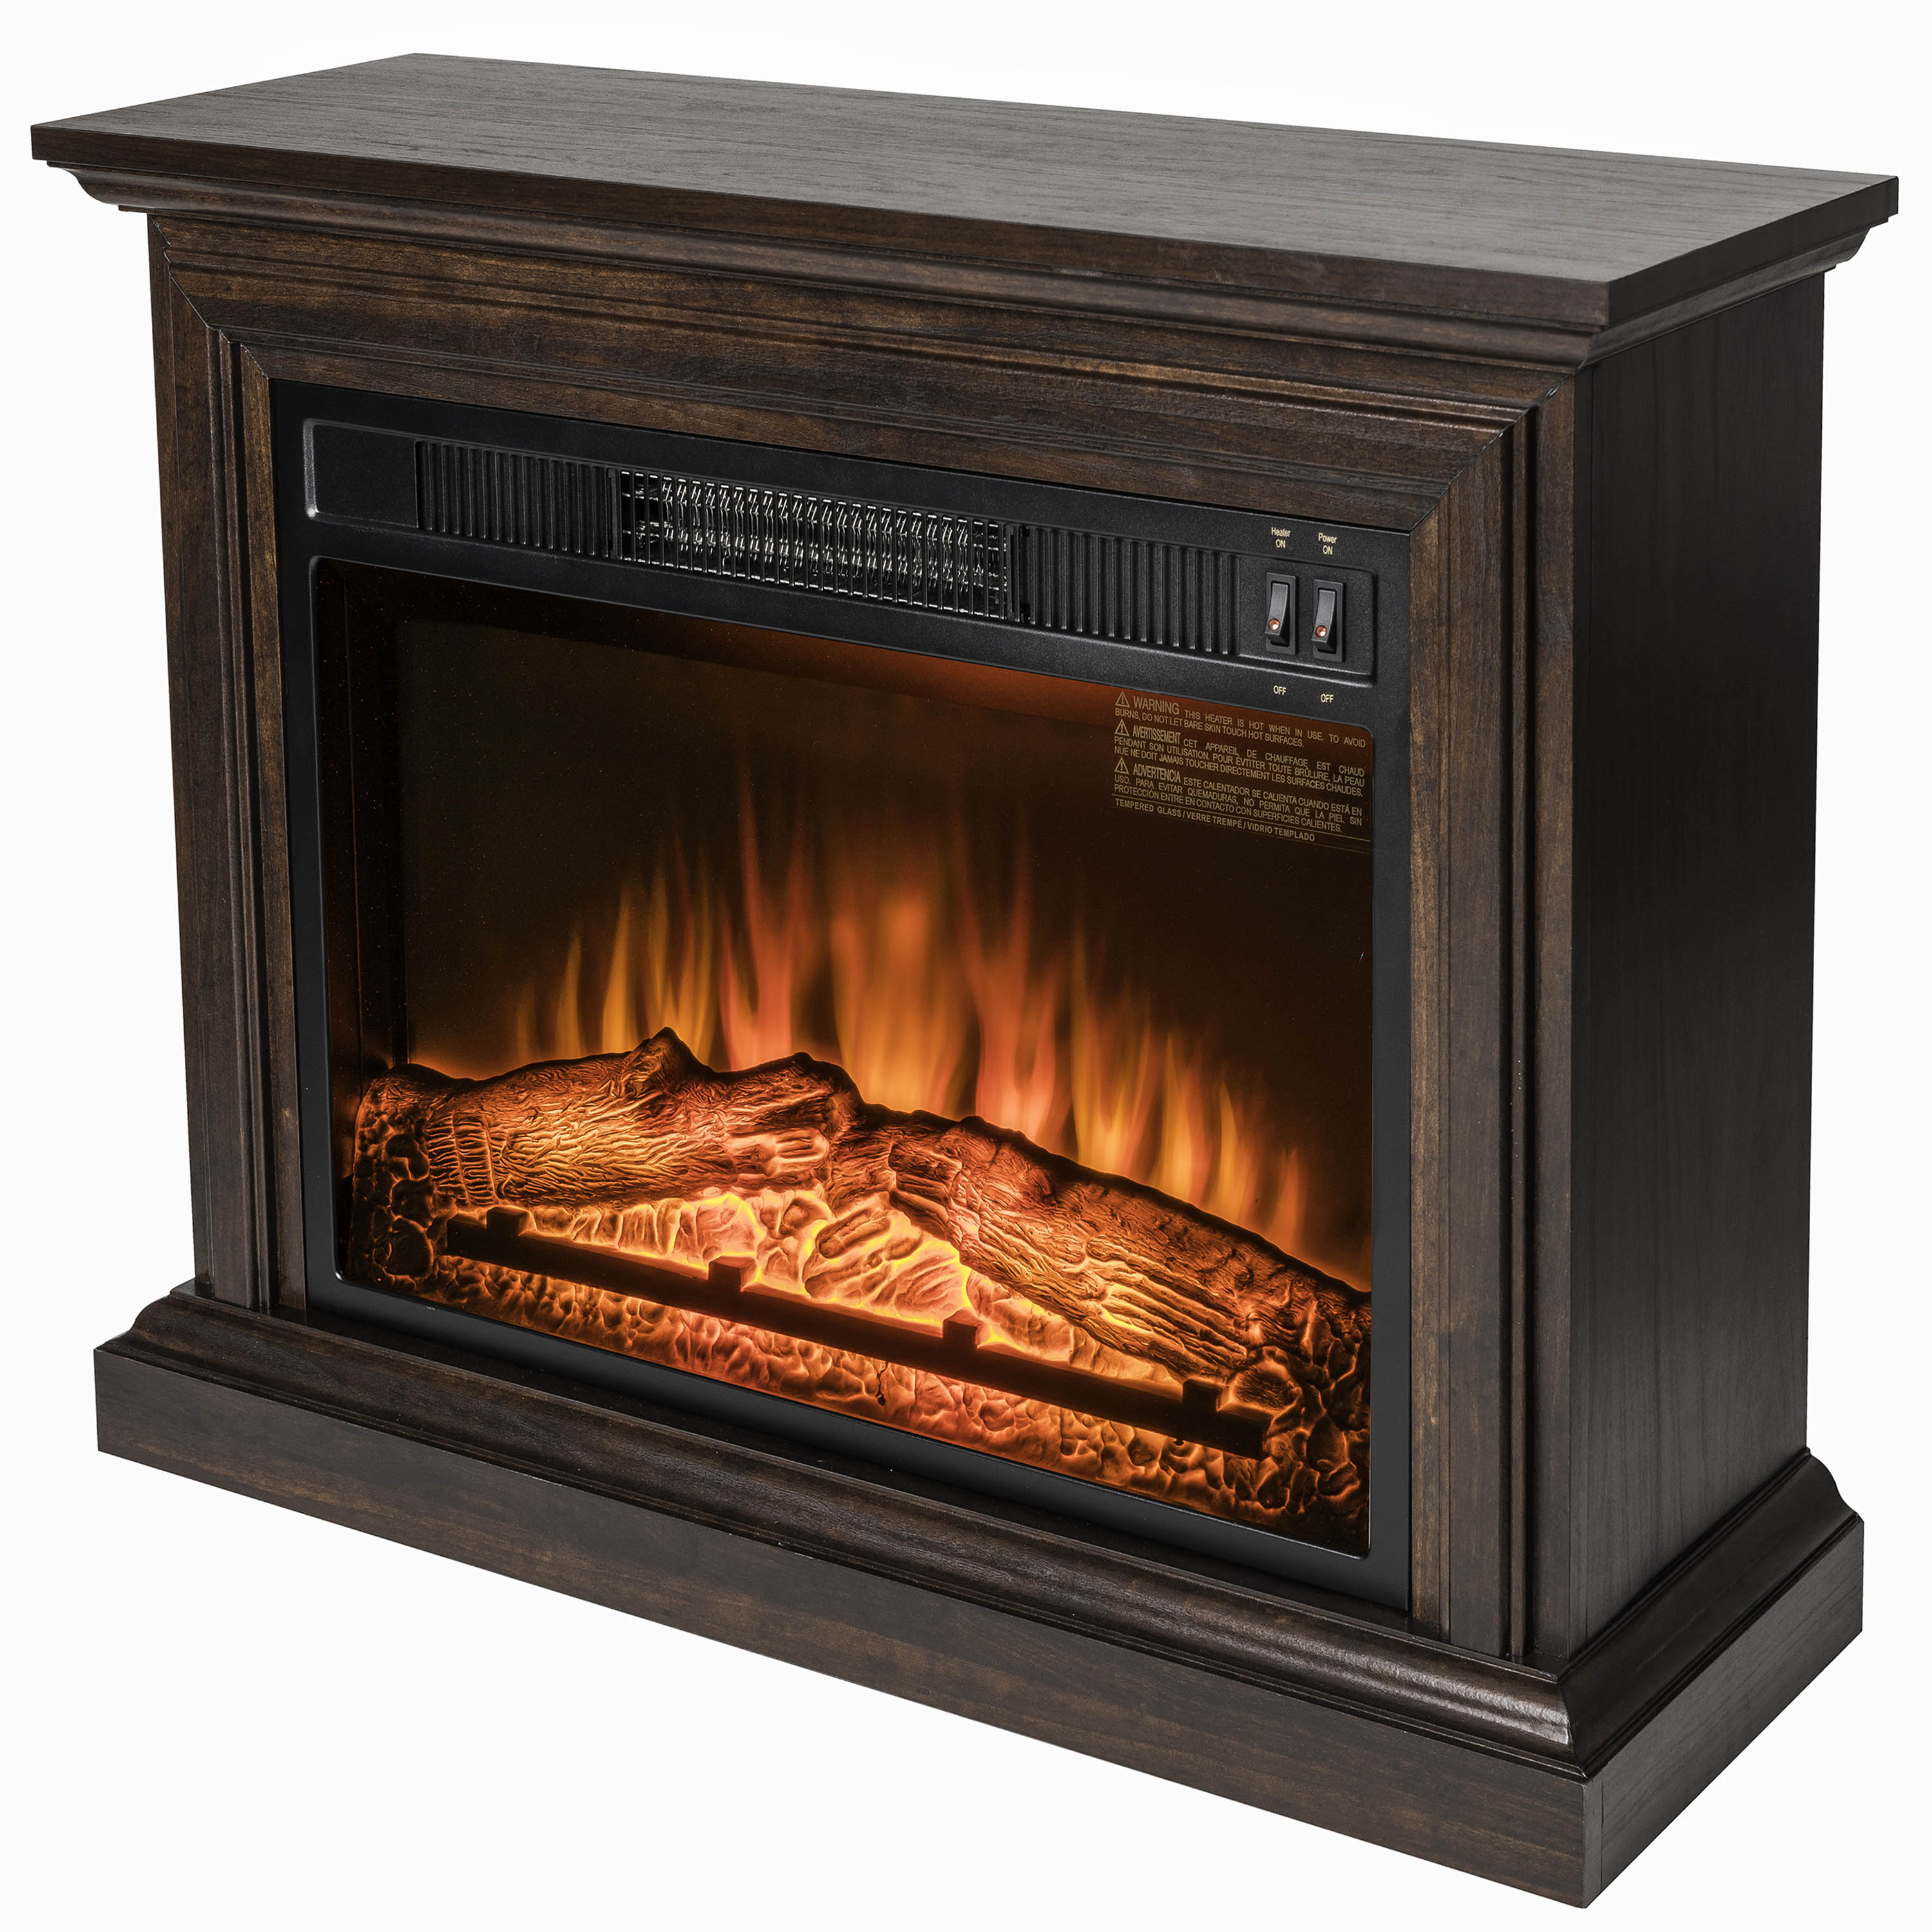 "AKDY 32"" Brown Wooden Mantel Freestanding Electric Fireplace Stove Heater 2"